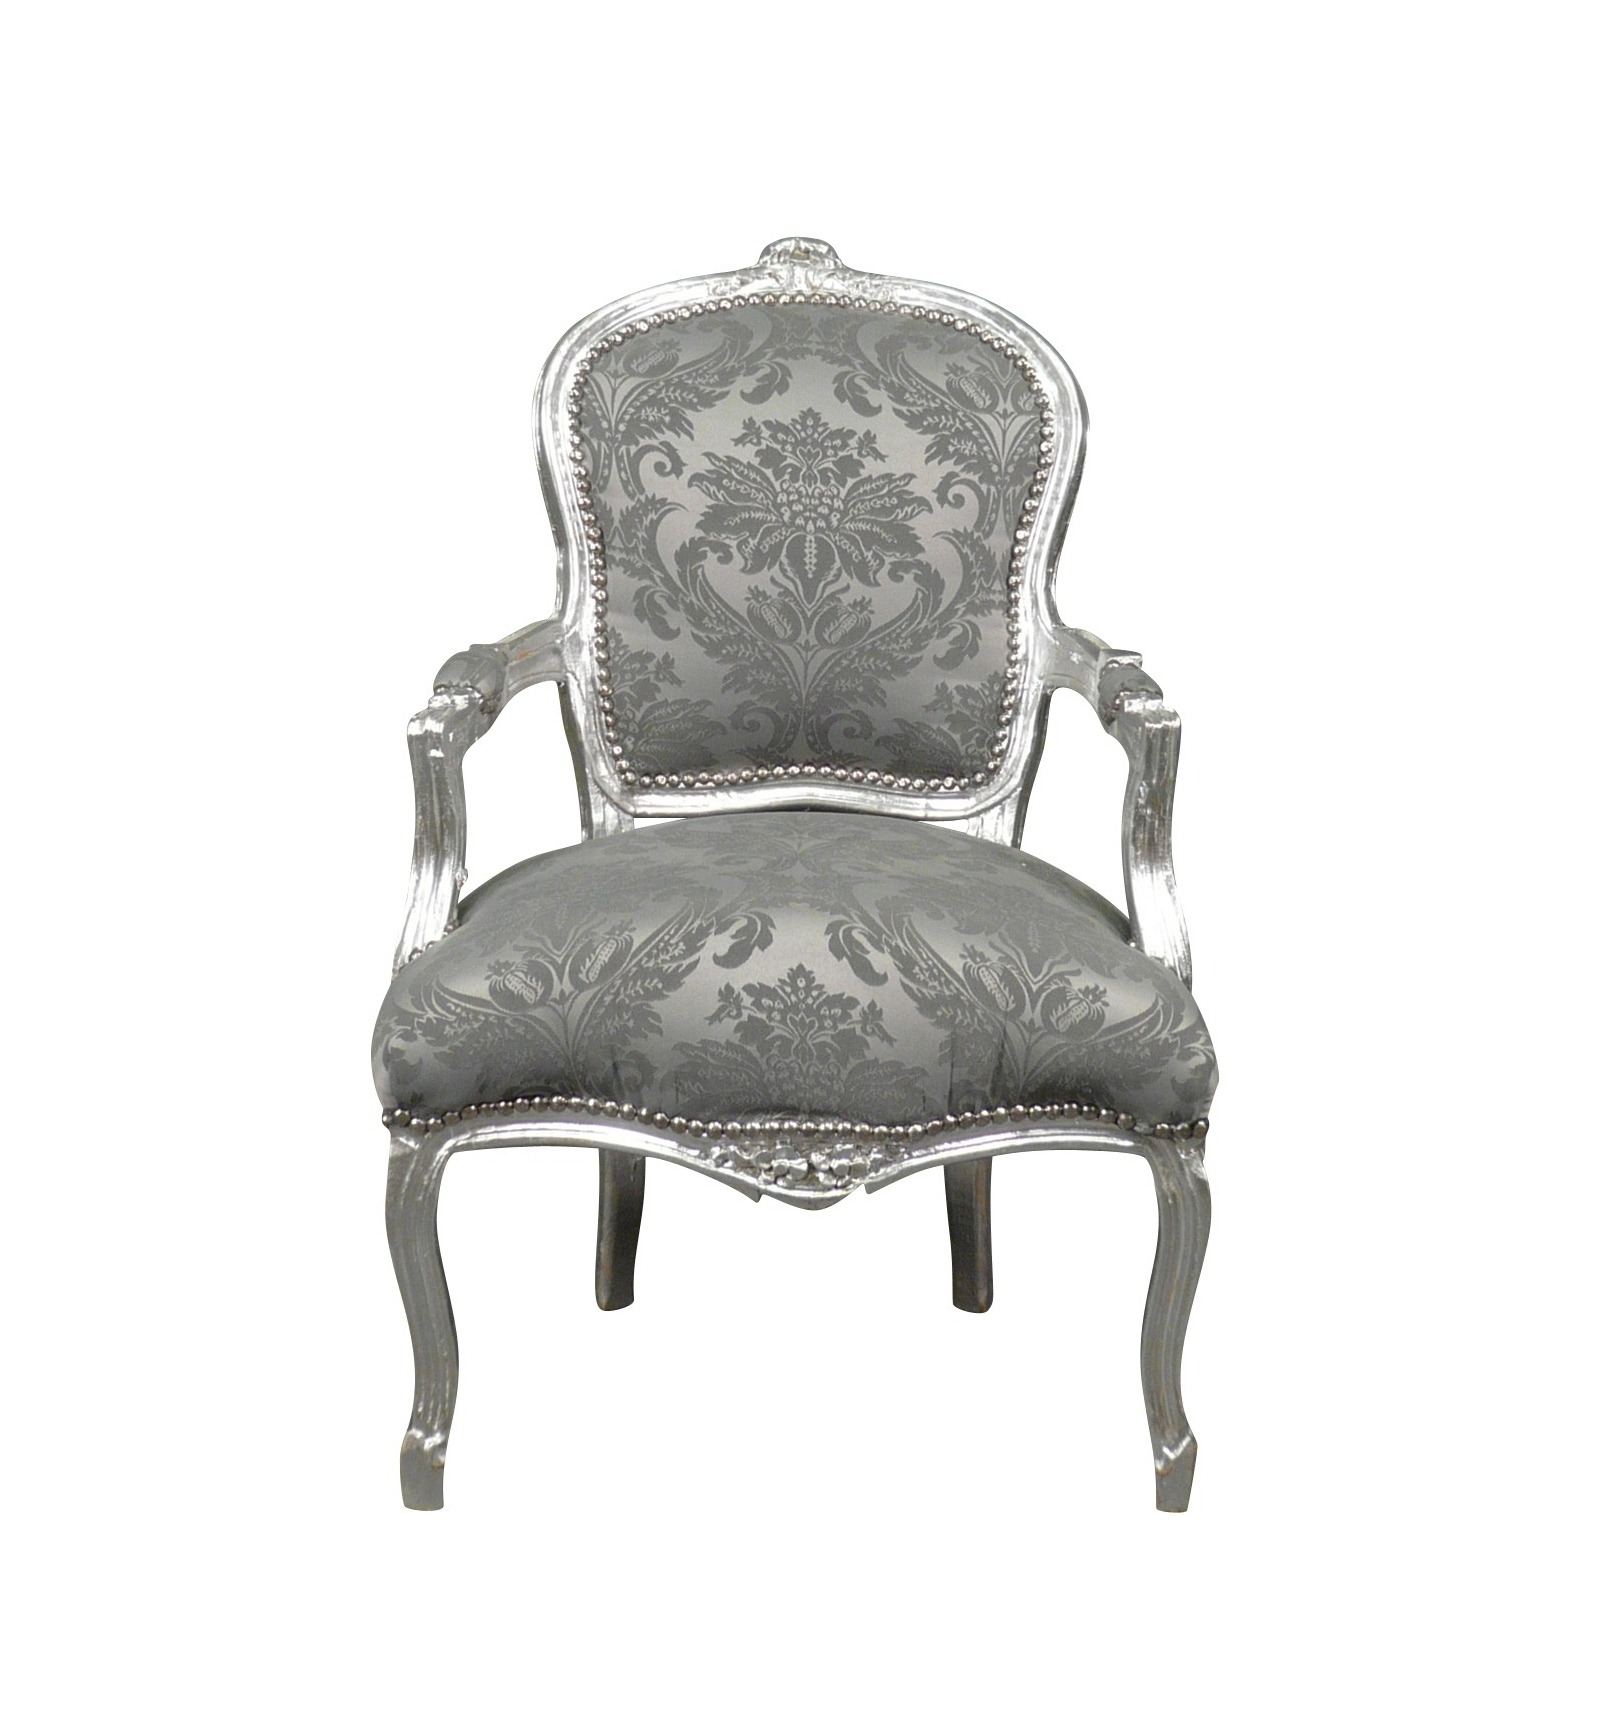 louis xv armchair. Black Bedroom Furniture Sets. Home Design Ideas